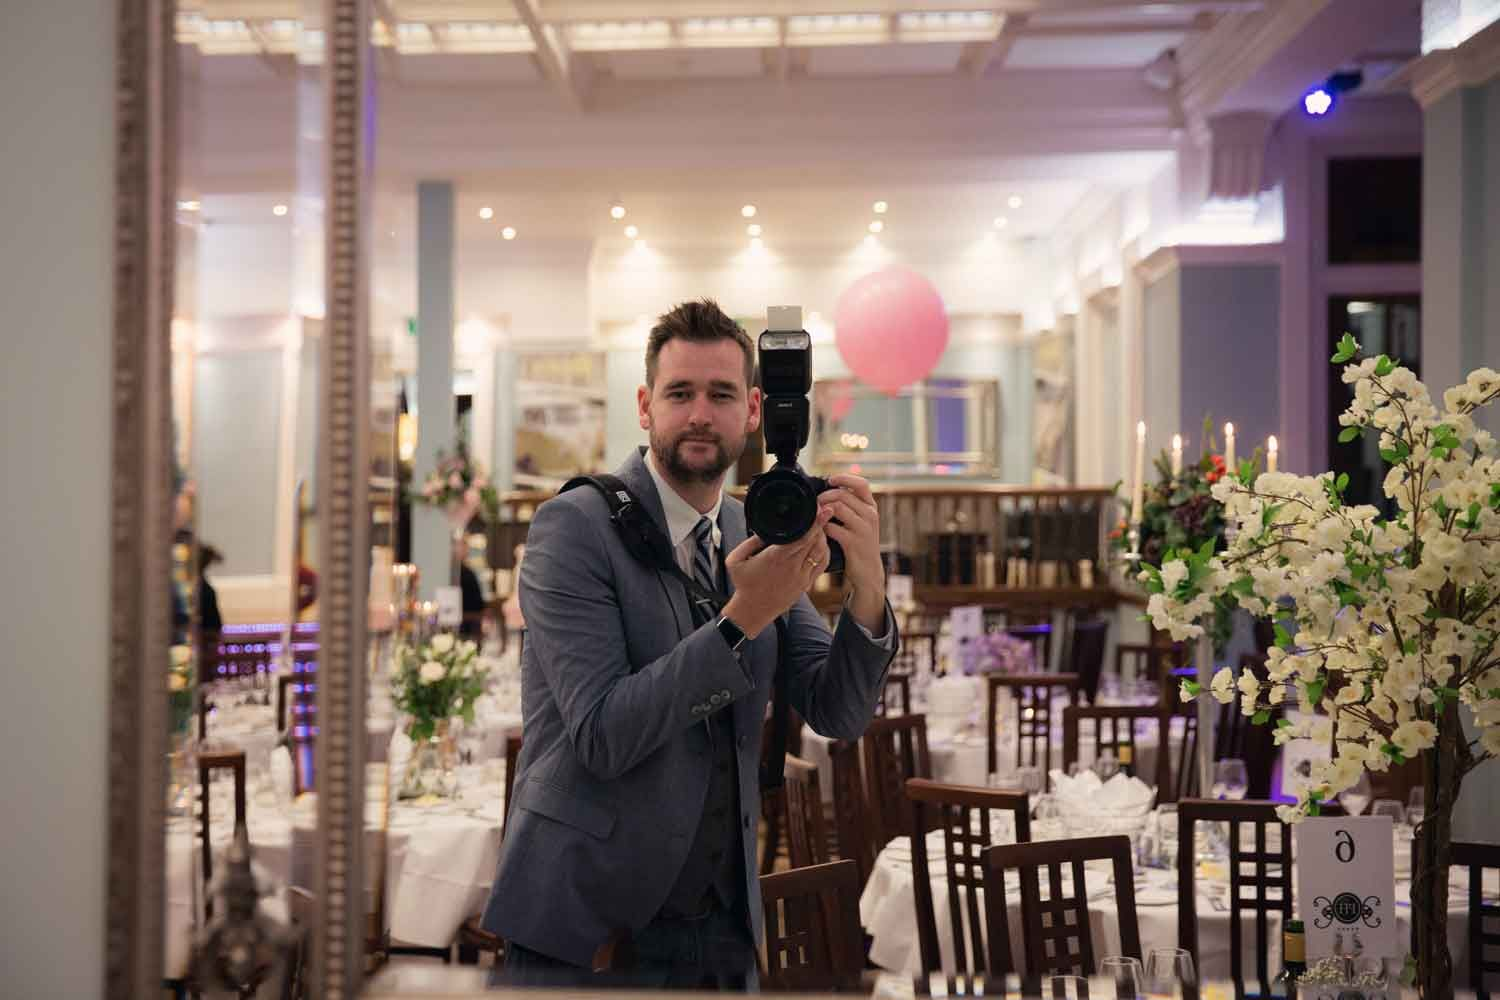 pendrell-hall-wedding-experience-event-atd-photography